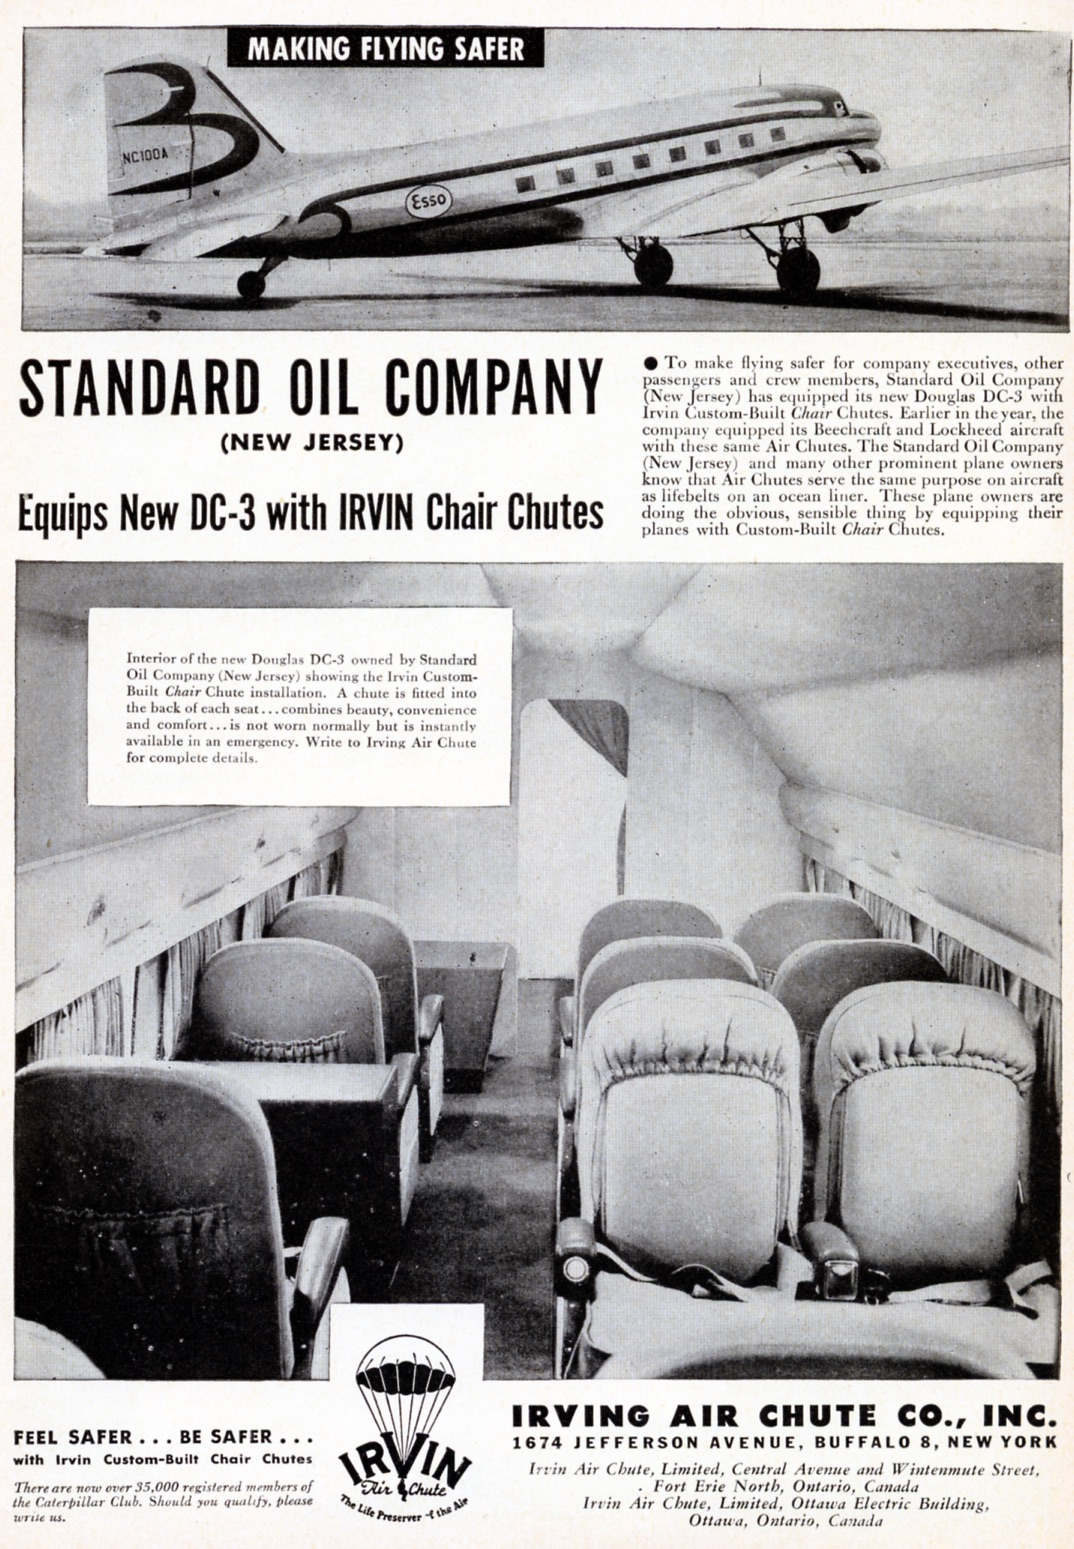 Endless new products poured onto the market in the late 1940s, parachutes for airliners and private planes included. Irvine Air Chute Co. of Fort Erie and Buffalo was selling these, but there were few takers. The chutes were packed as tightly as possible in seat backs, but their cost and use of scarce space soon saw this exotic idea fade. Interestingly, Cirrus aircraft today equips each of its aircraft with a parachute to lower the entire plane to the ground in case of dire emergency.